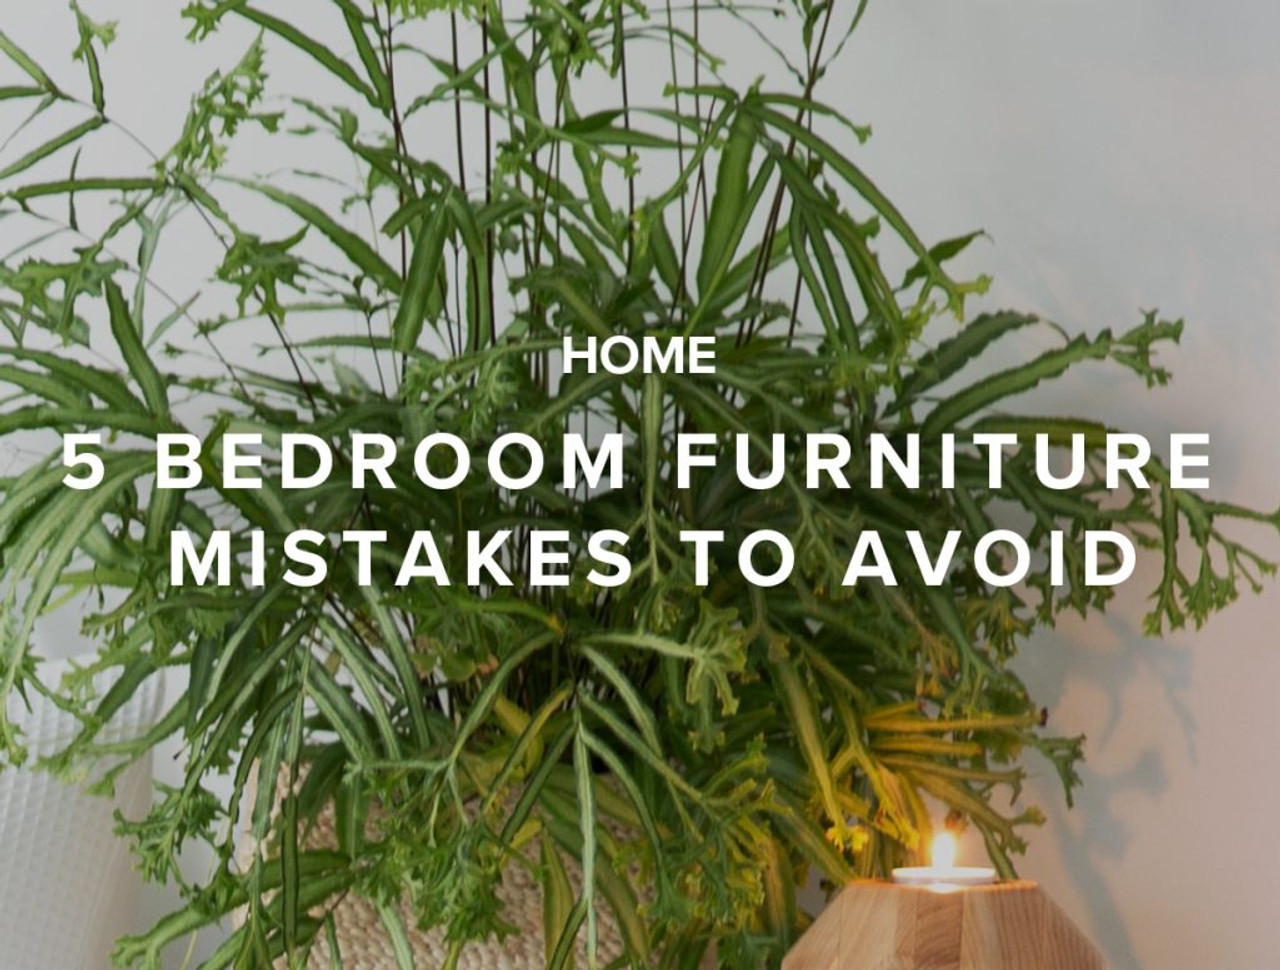 5 Bedroom Furniture Mistakes to Avoid